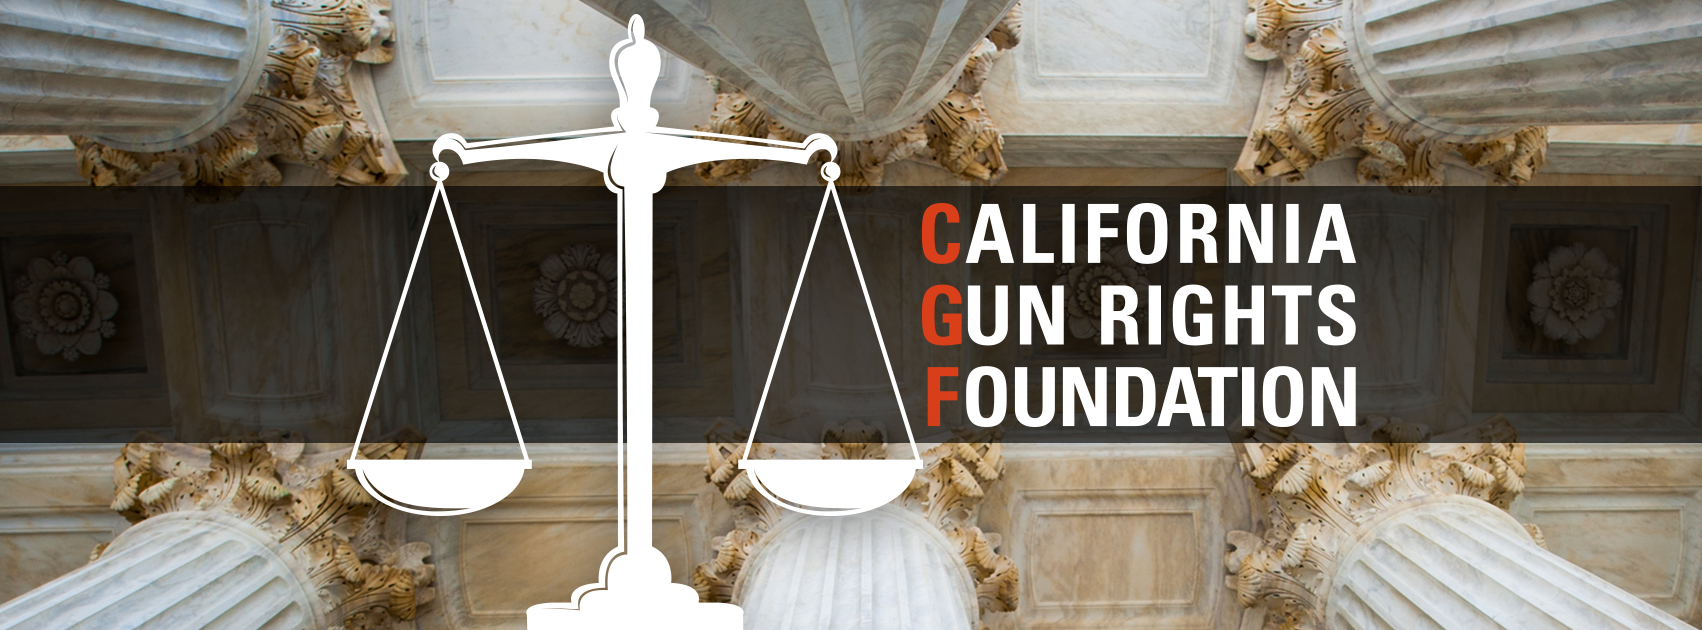 California Gun Rights Foundation: Support California Gun Rights Foundation